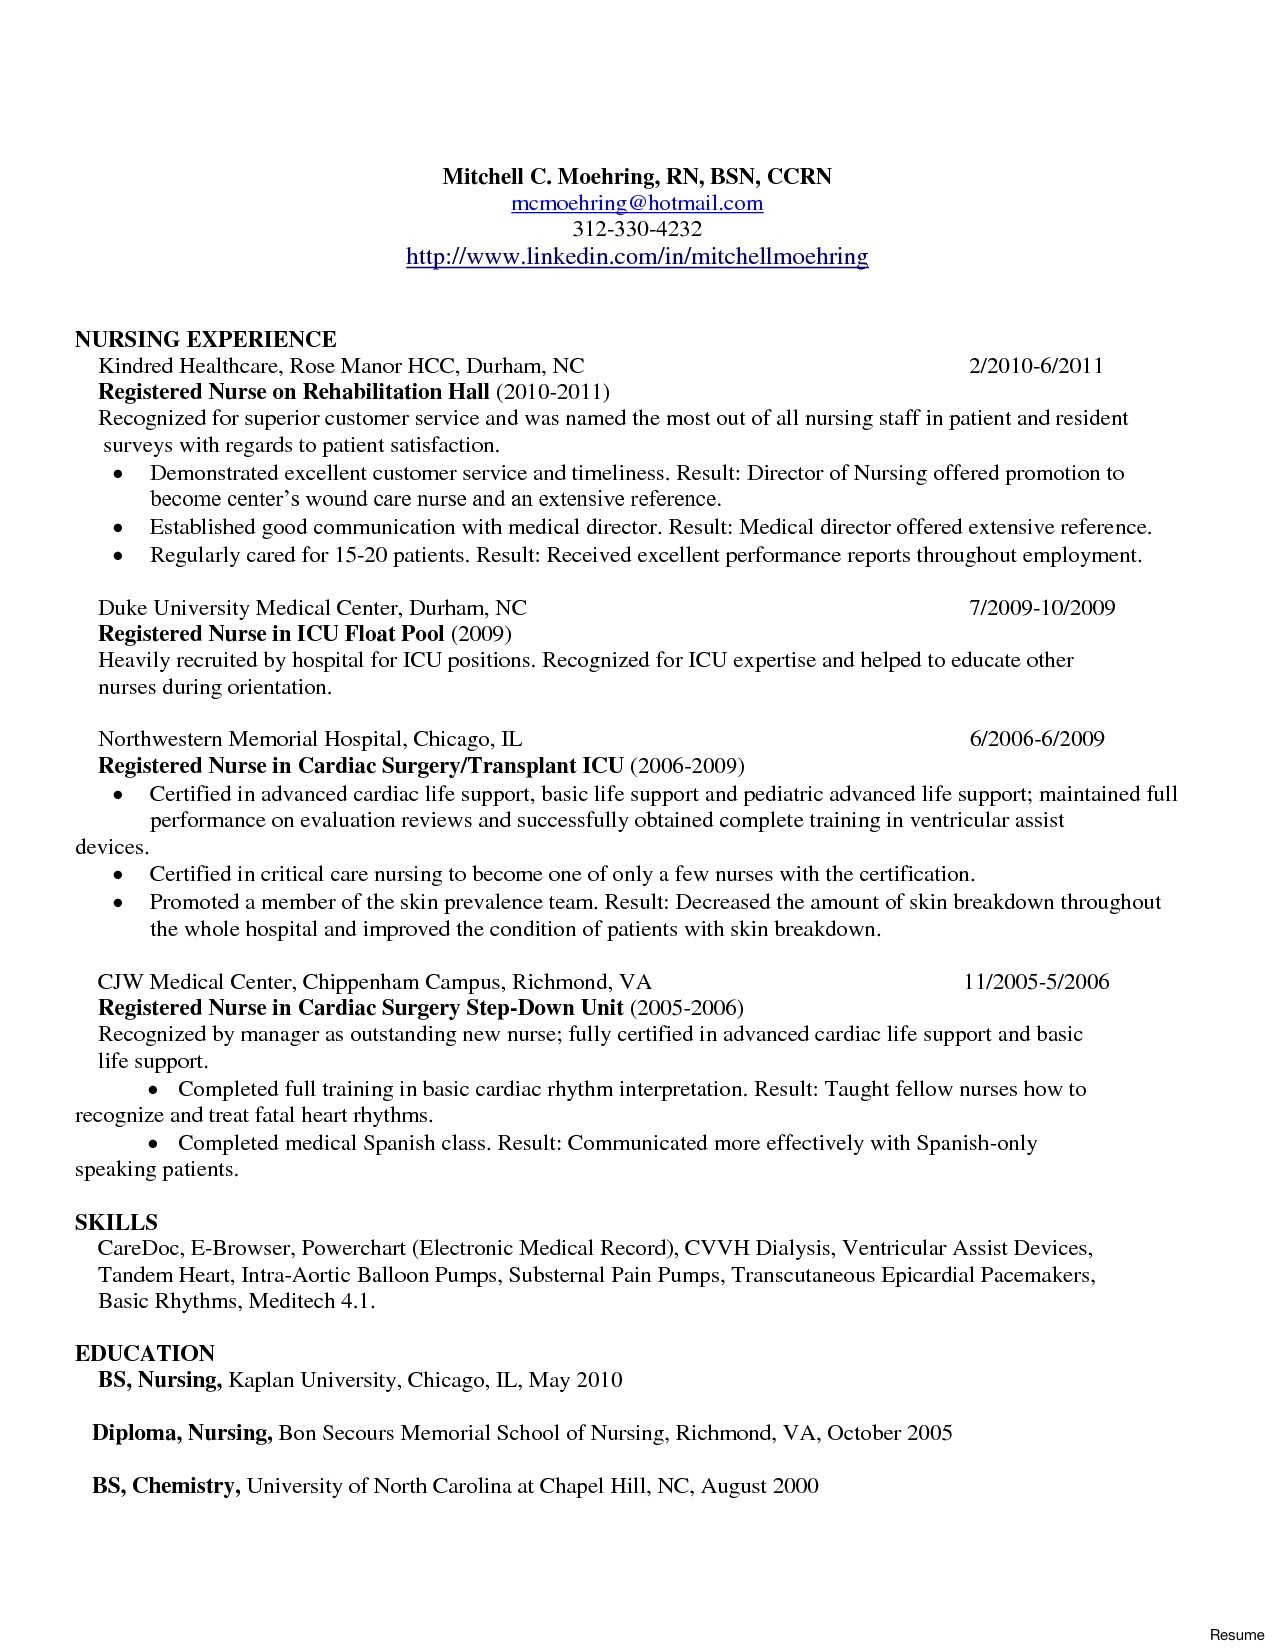 rn resume samples example-Elegant New Nurse Resume Awesome Nurse Resume 0d Wallpapers 42 8-s